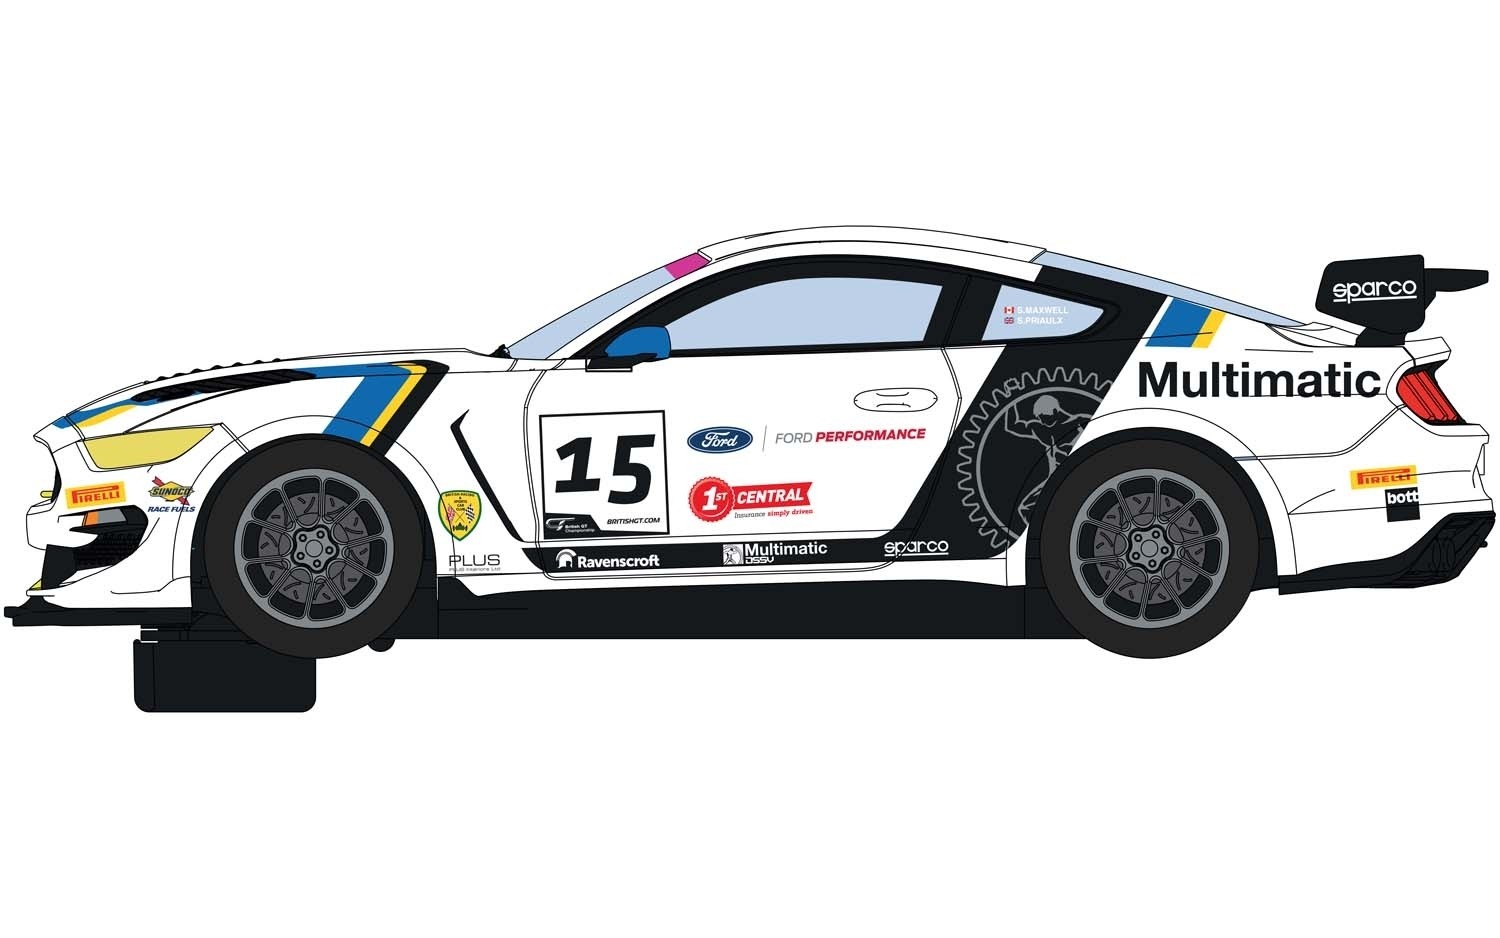 C4173 Scalextric Ford Mustang GT4, British GT 2019, Multimatic